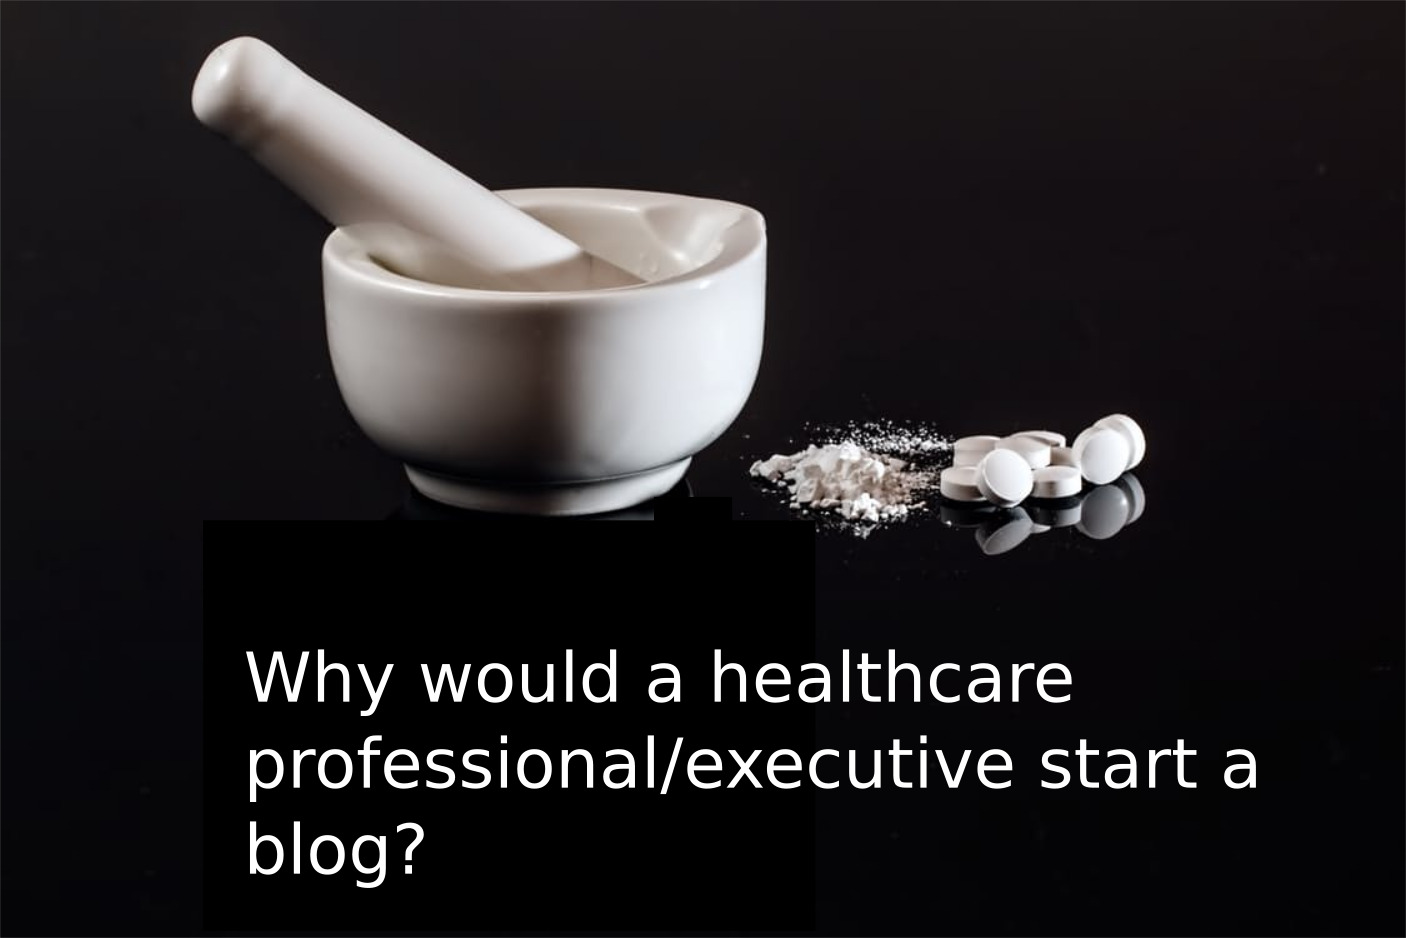 Why would a healthcare professional/executive start a blog?